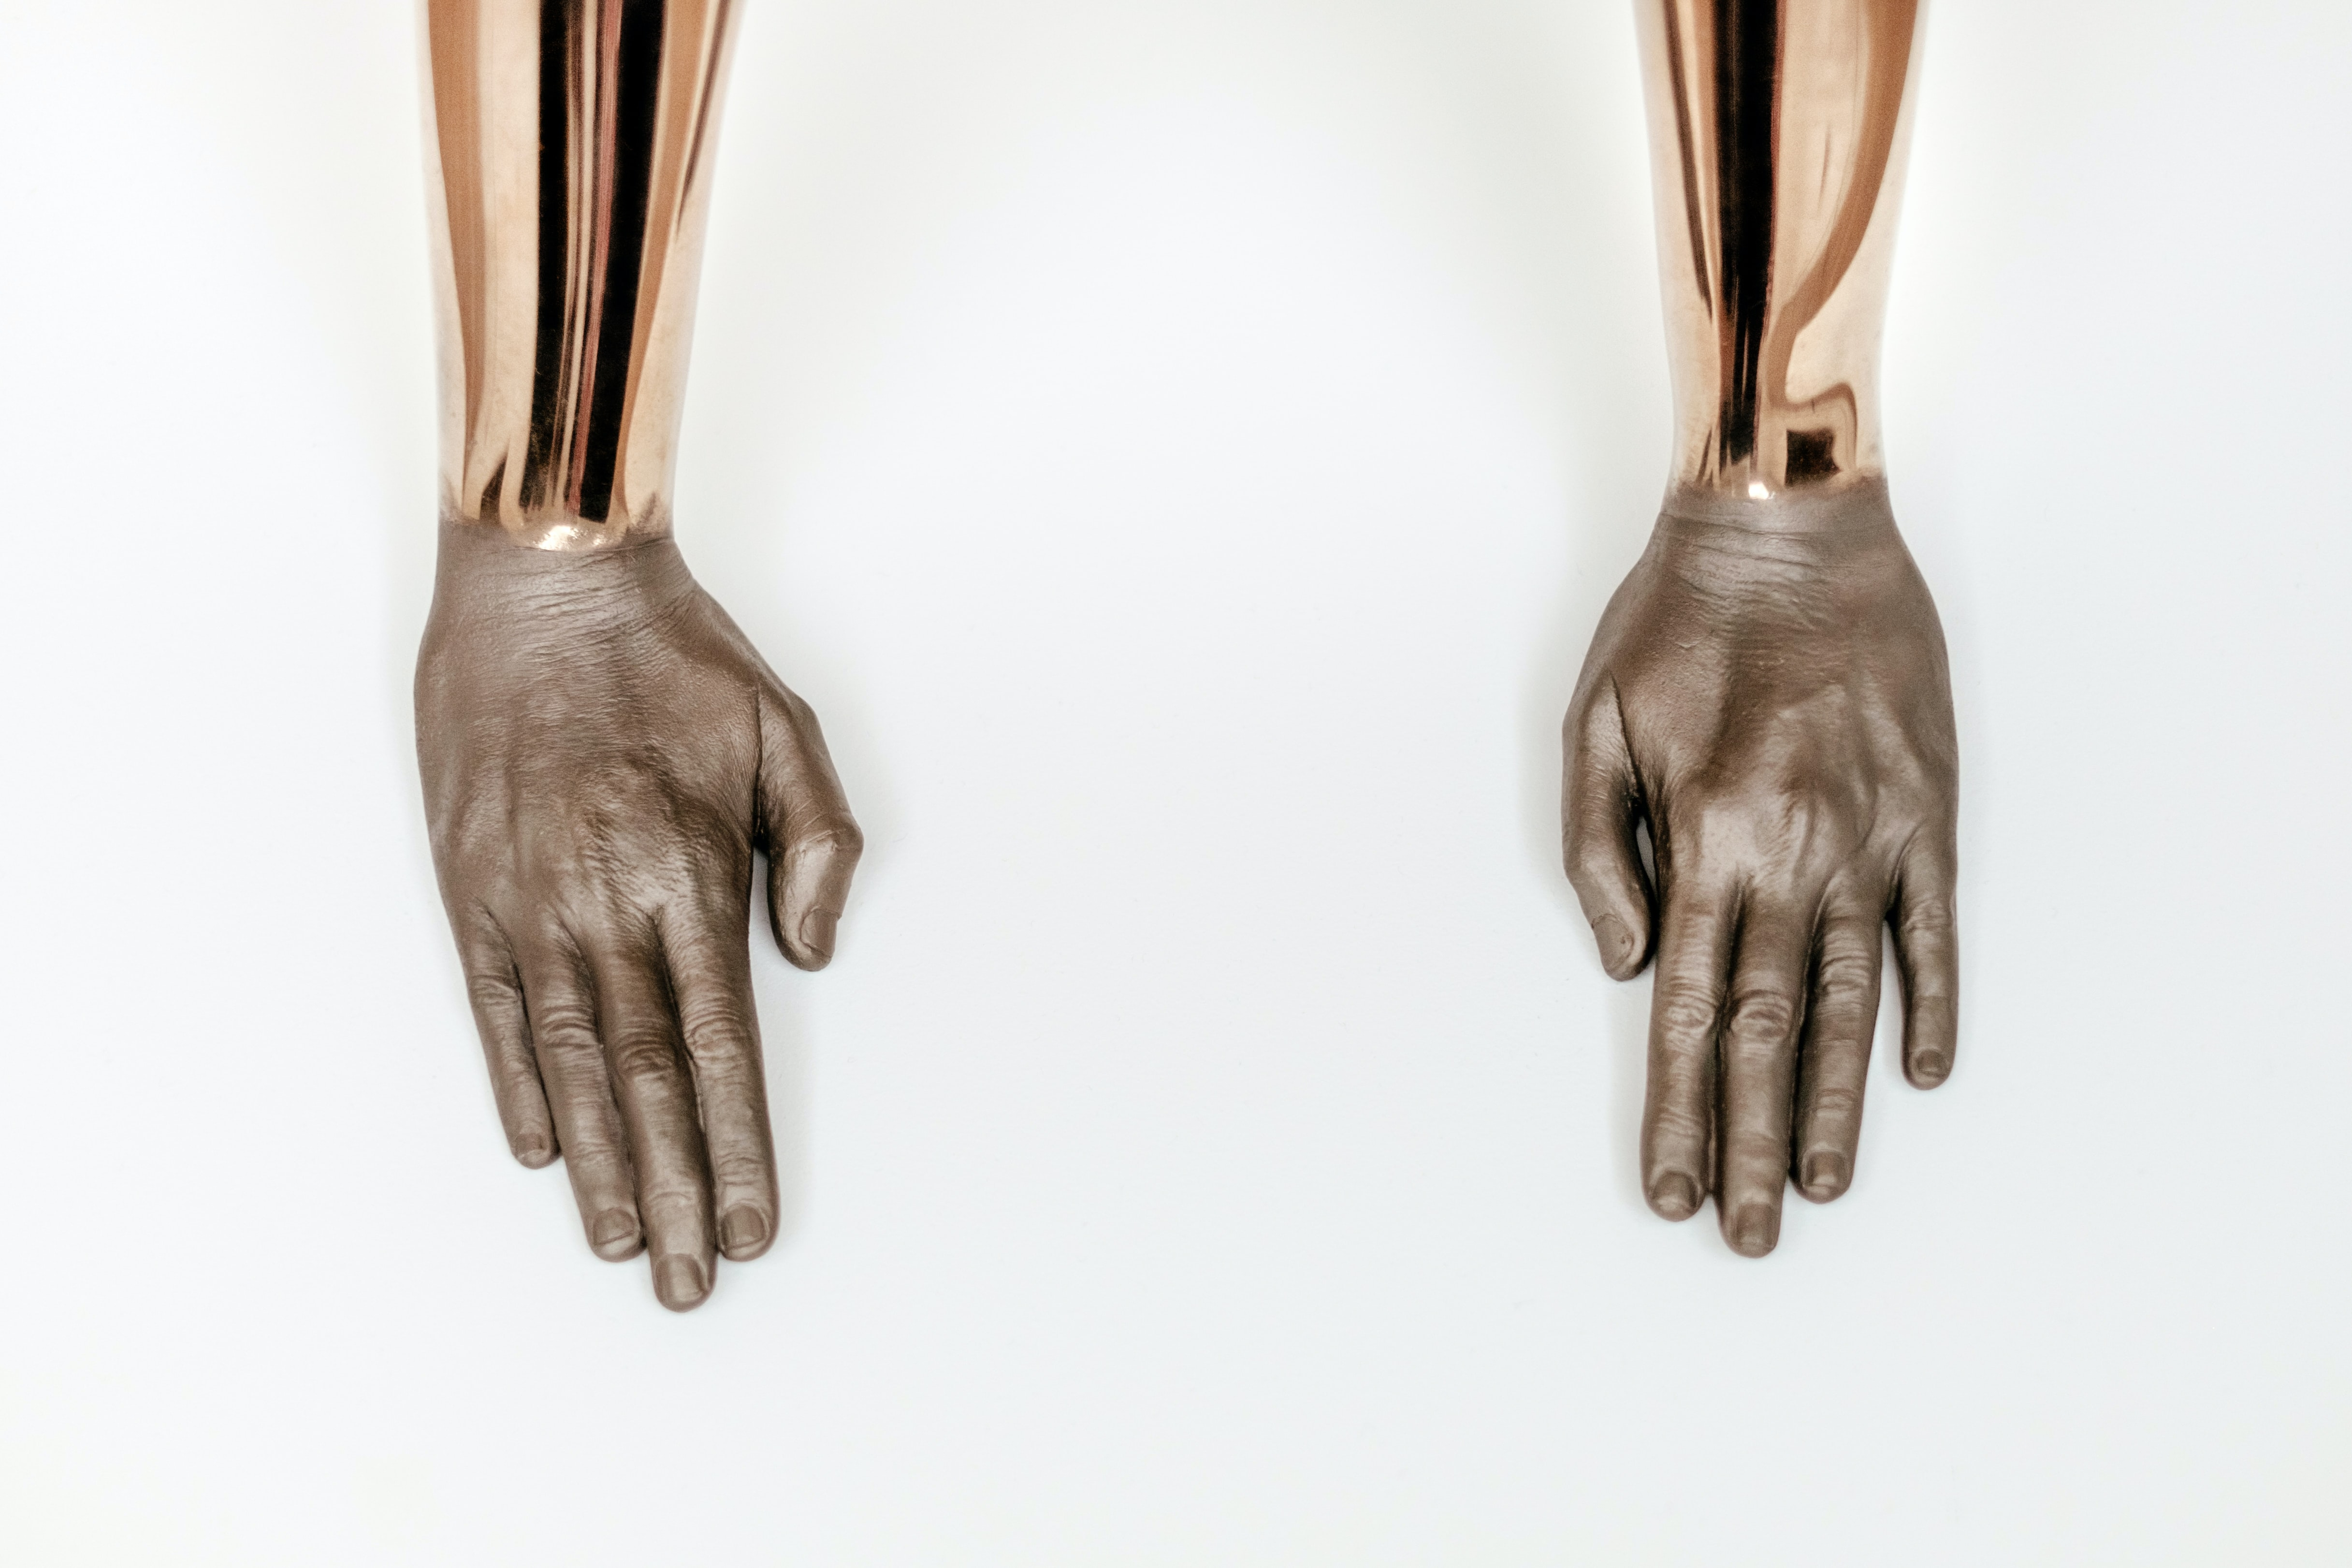 Sculpture of golden arms and human hands resting on a white surface in Fundação Serralves